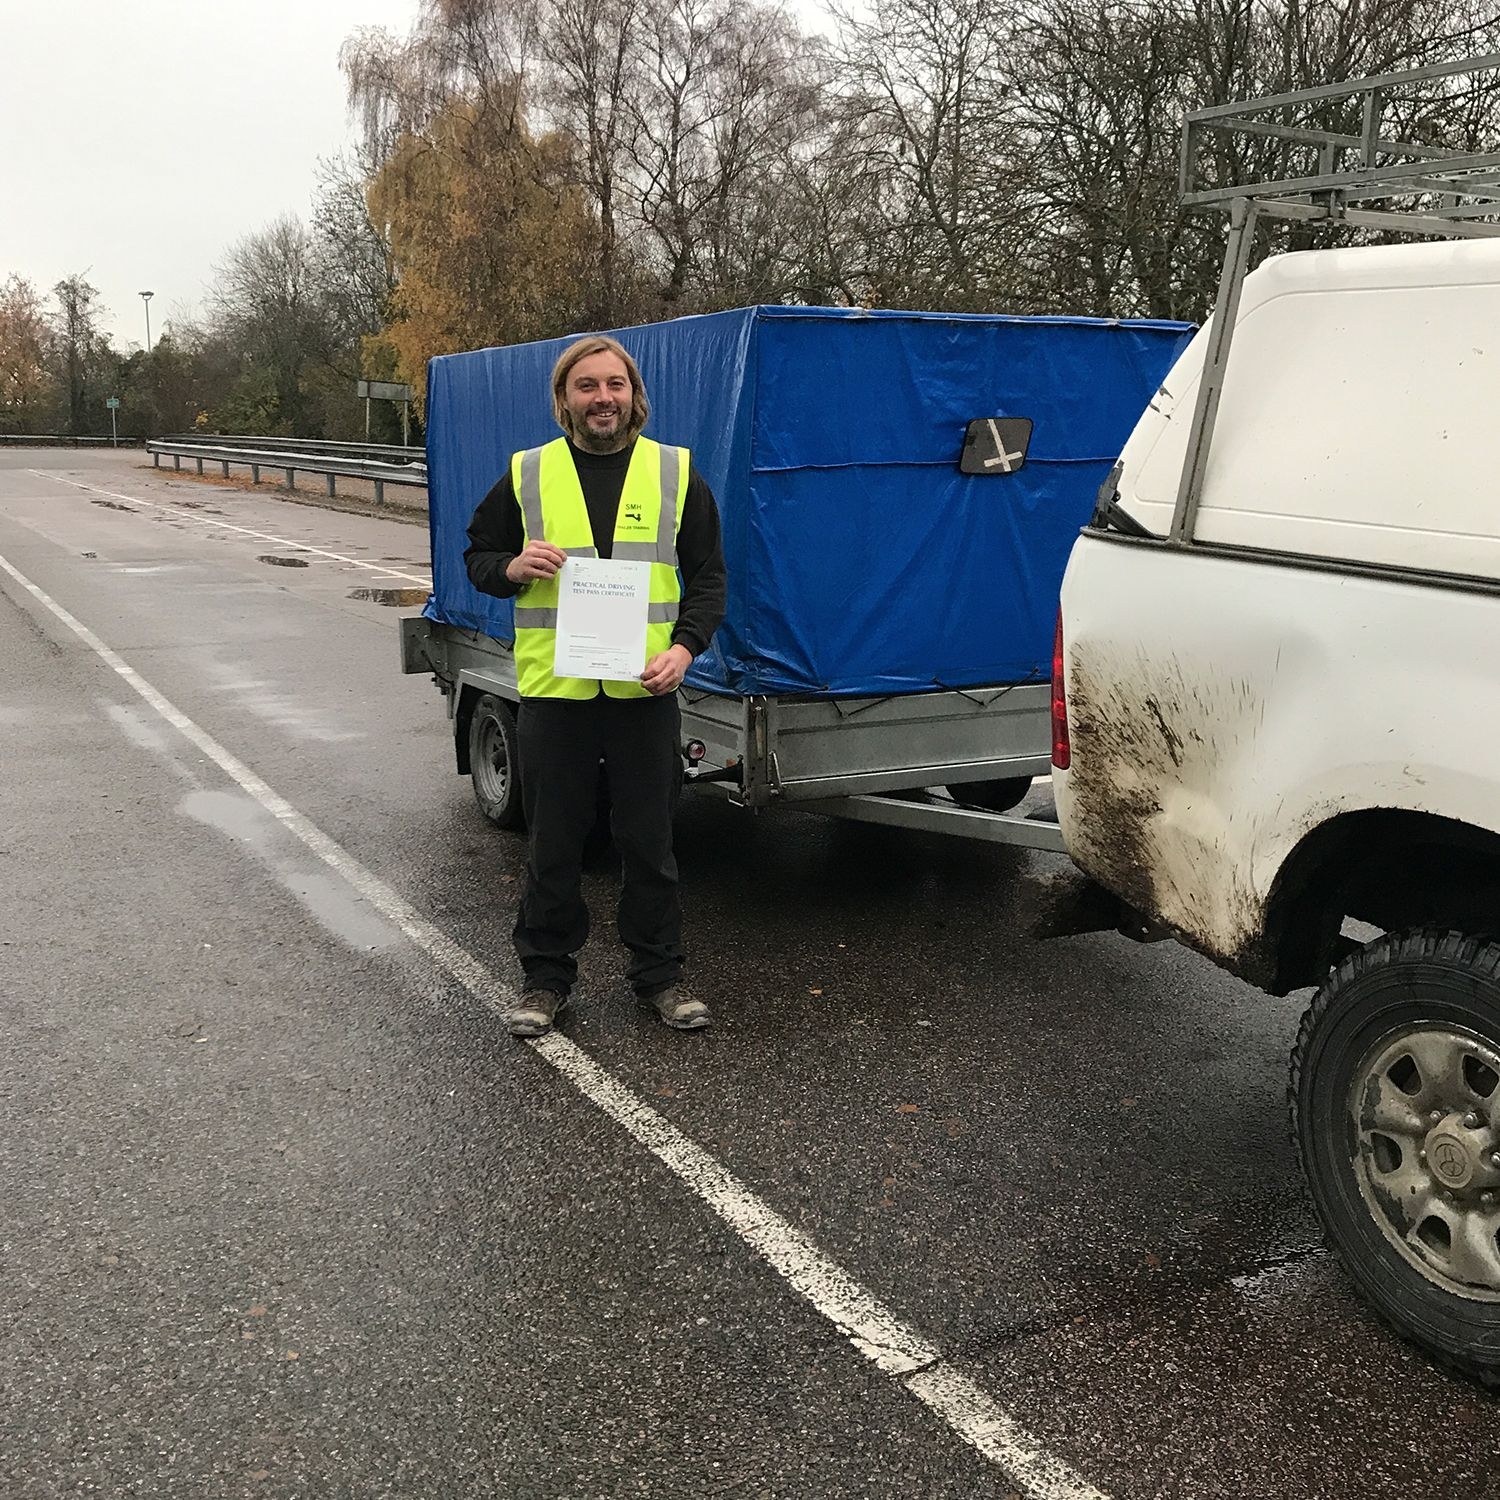 Piers who passed his BE trailer towing test in Gillingham Kent